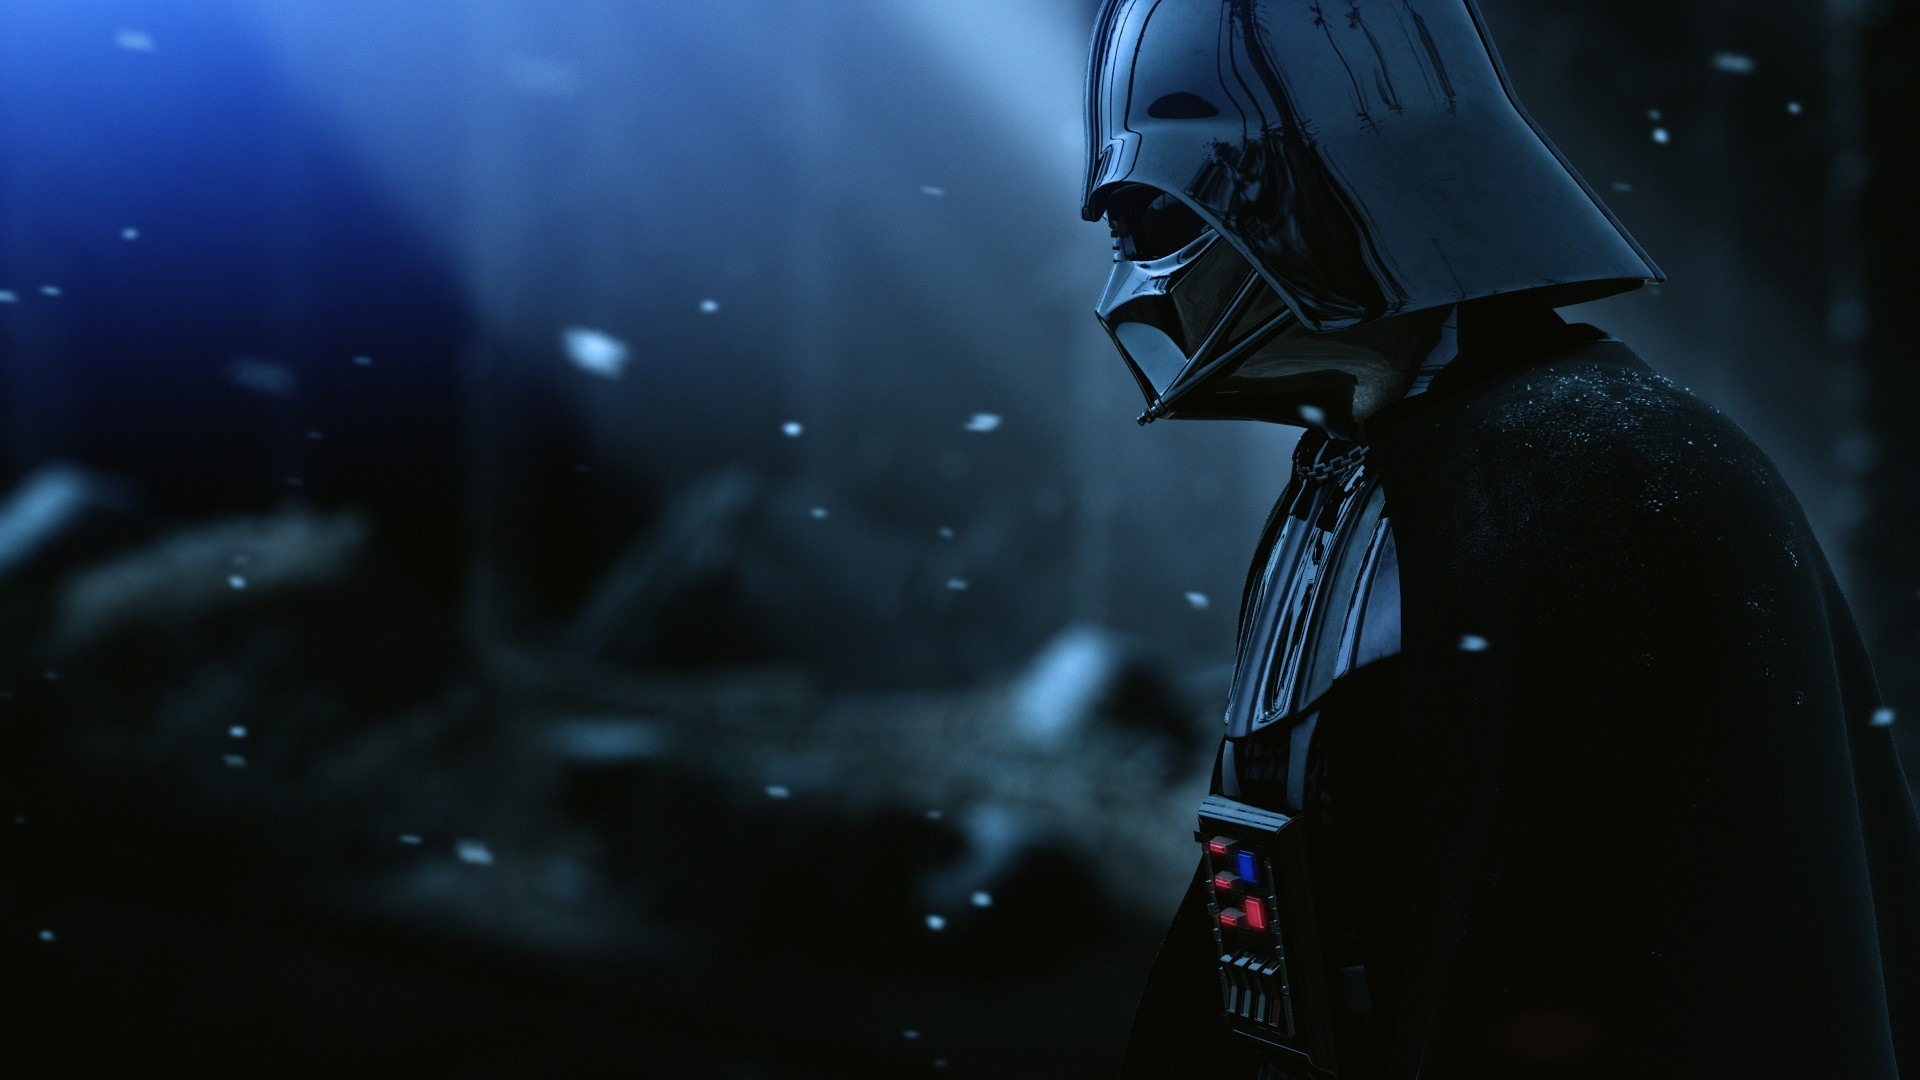 Star Wars Wallpapers  Best Wallpapers 1920x1080